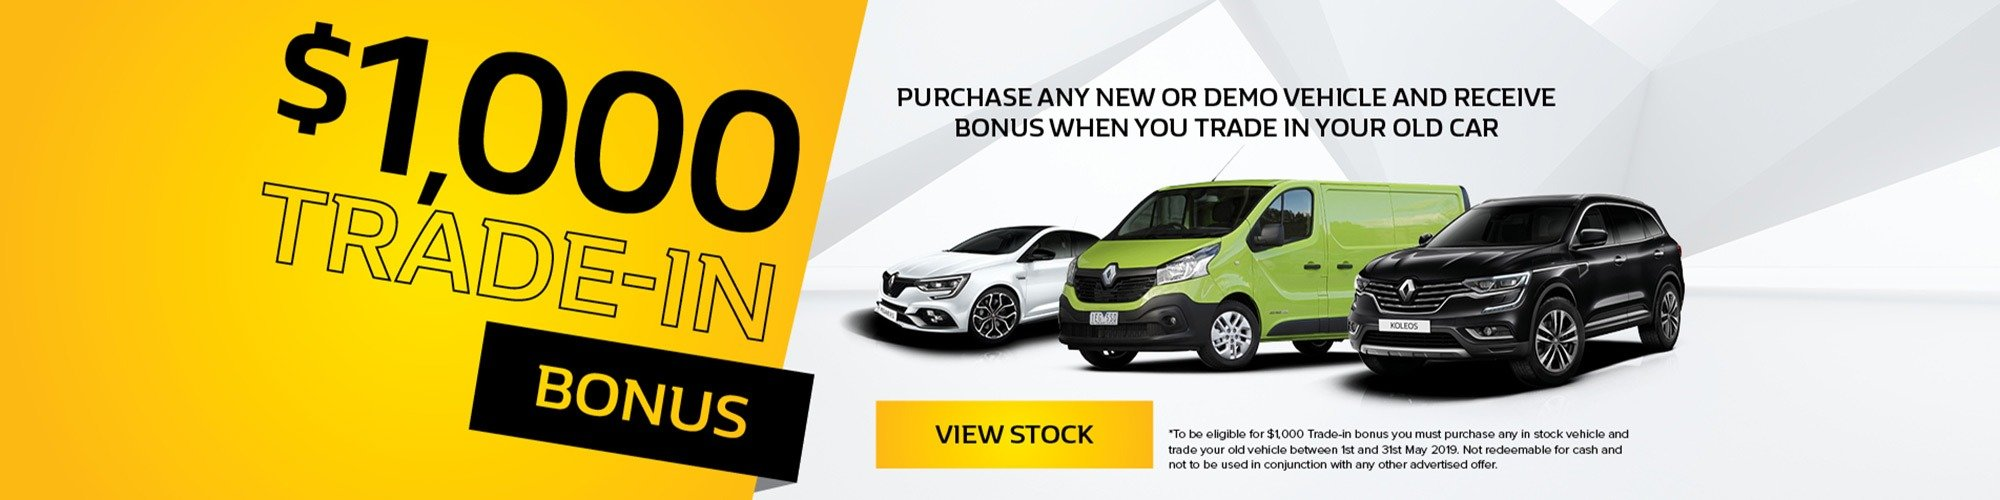 Dominelli Renault Trade In